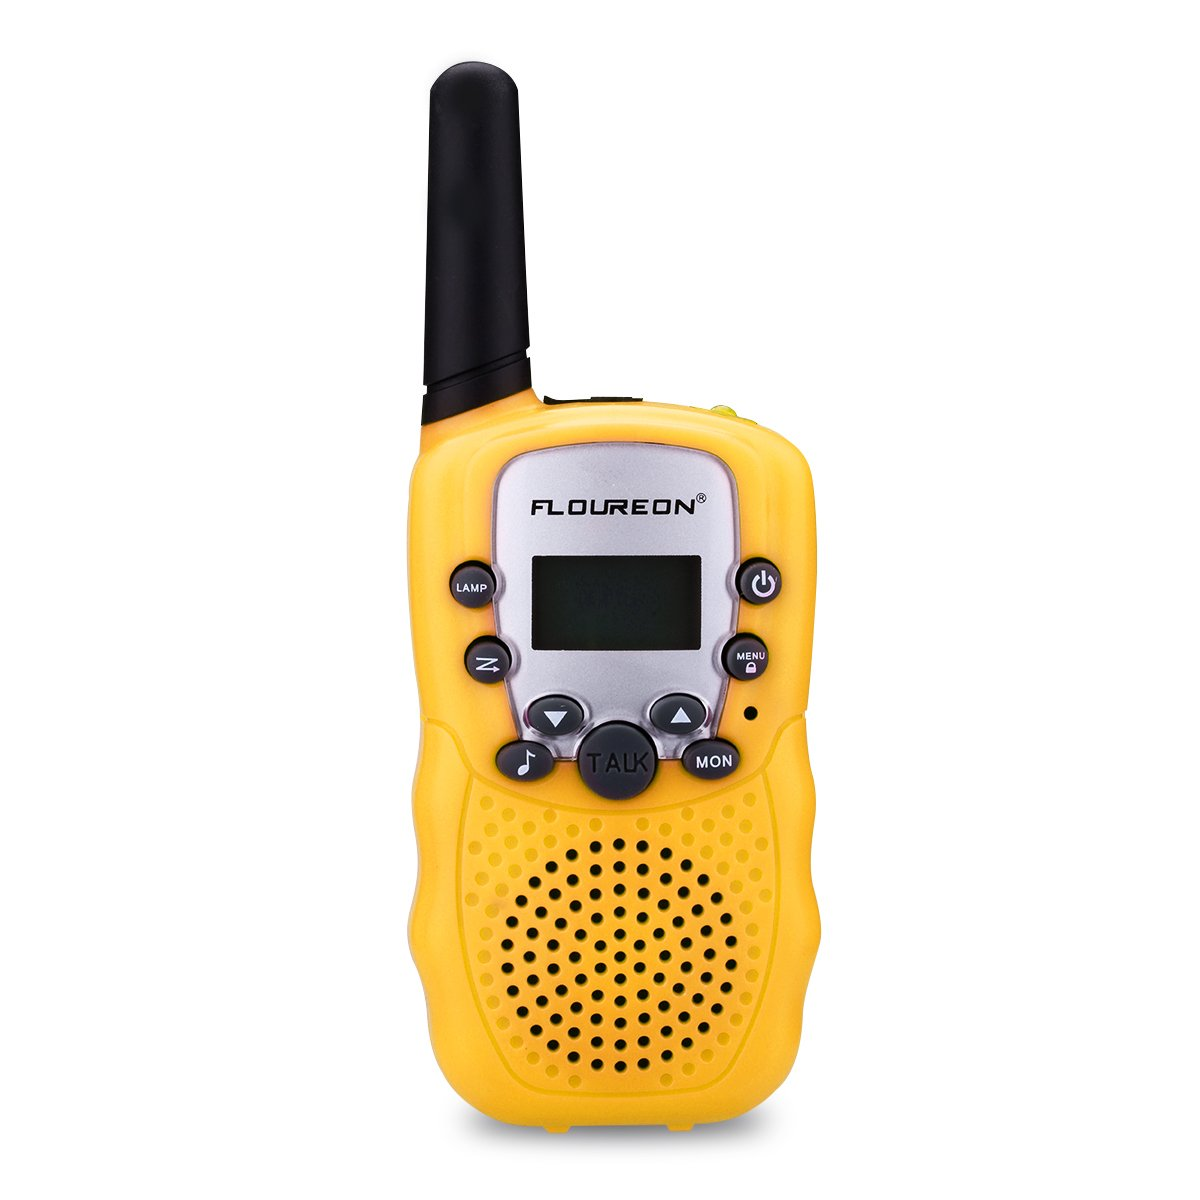 FLOUREON Kids Toy Walkie Talkies Two Way Radios Walky Talky 22 Channel Long Range UHF Handheld Outdoor Kids Toy Cellphone for Children Day/Birthday (Yellow)